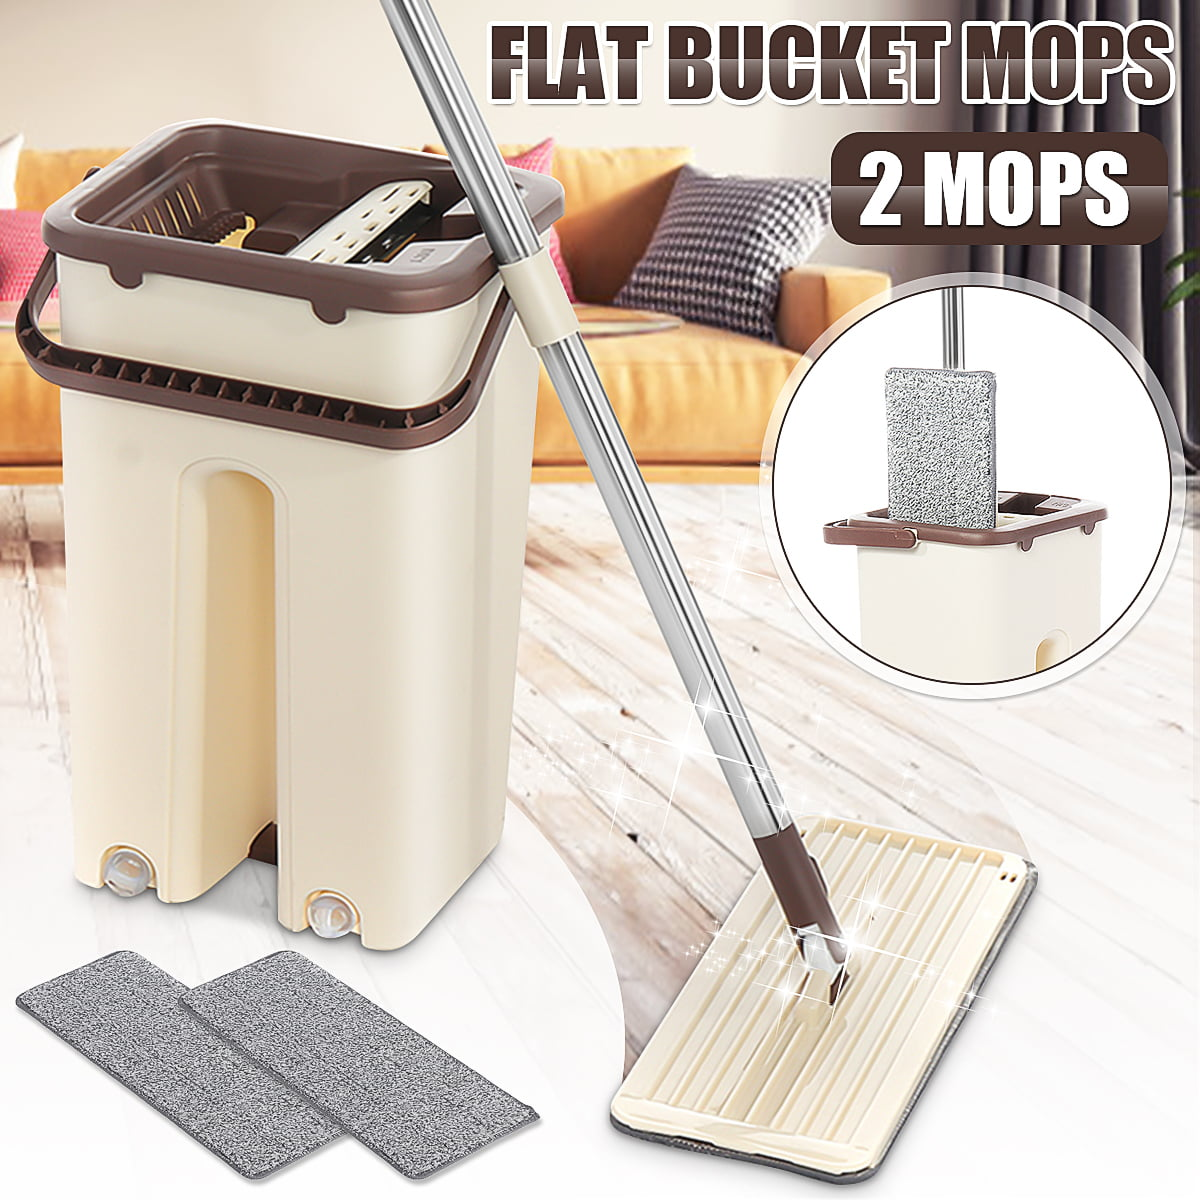 Eyliden Squeeze Flat Mop Bucket Set Can Wash and Dry Mop with 2 Reusable Microfiber Pads Wet and Dry Usage on All Kinds of Floor